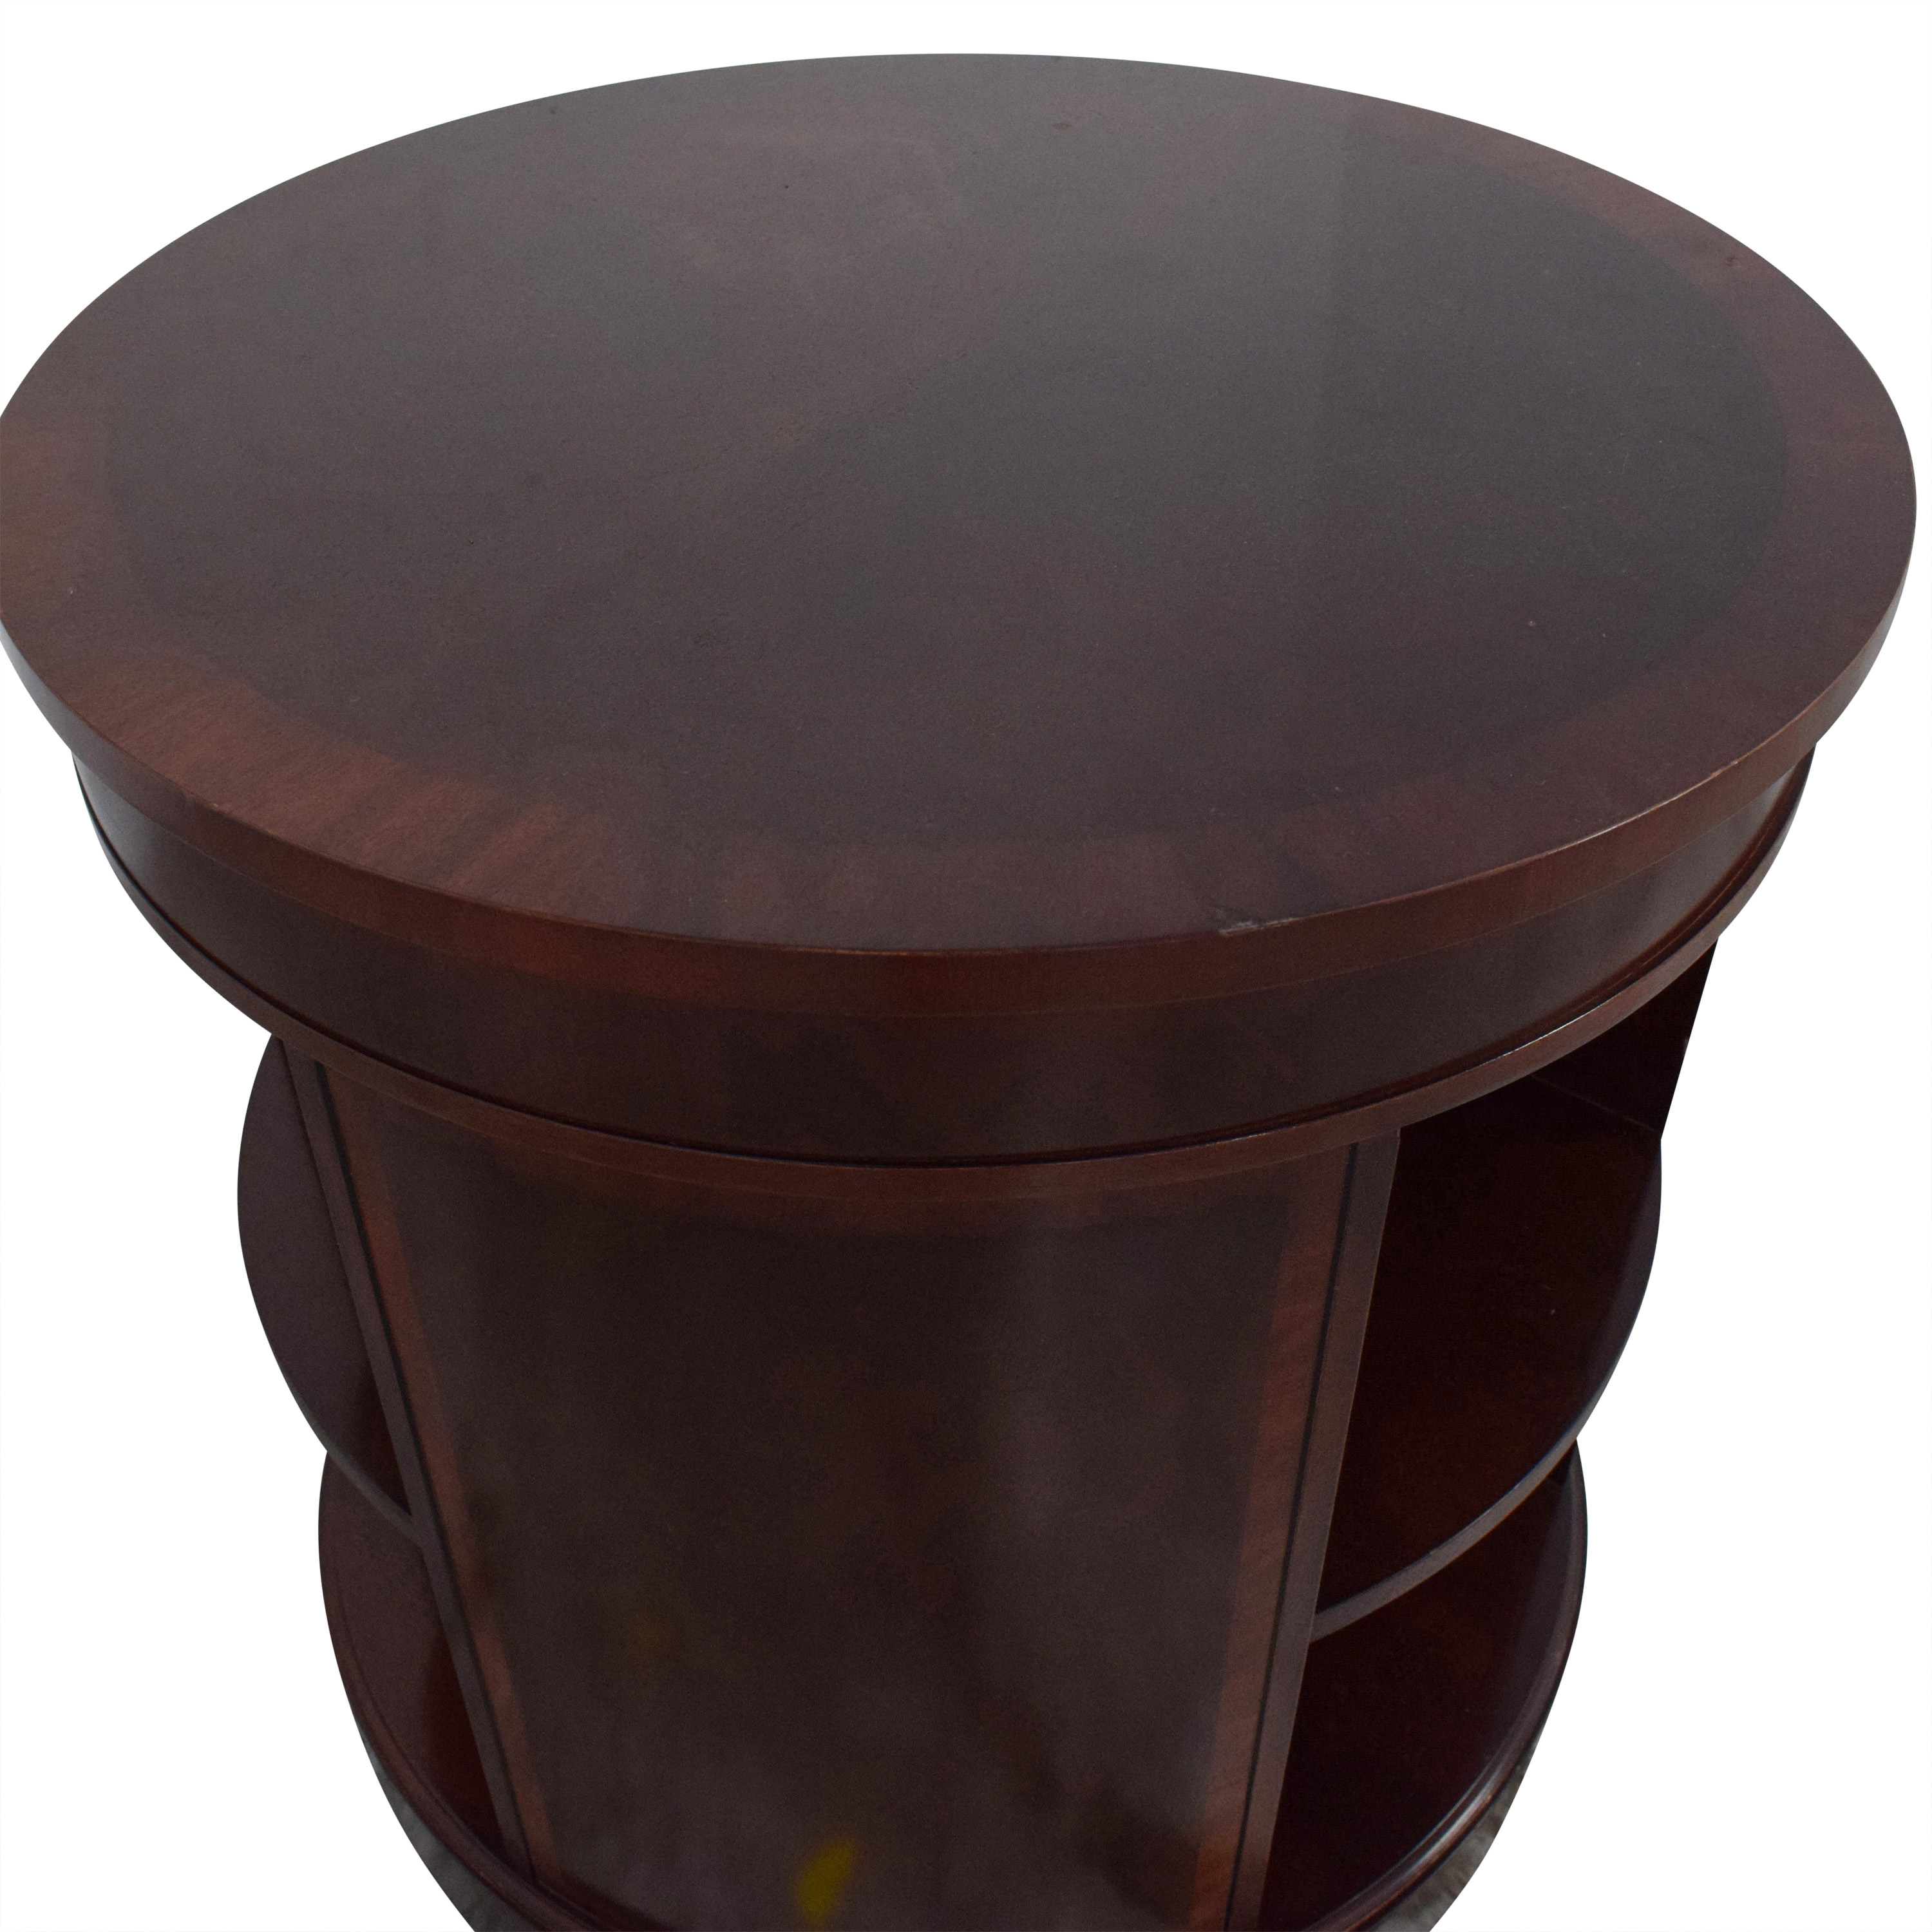 Baker Round End Table sale